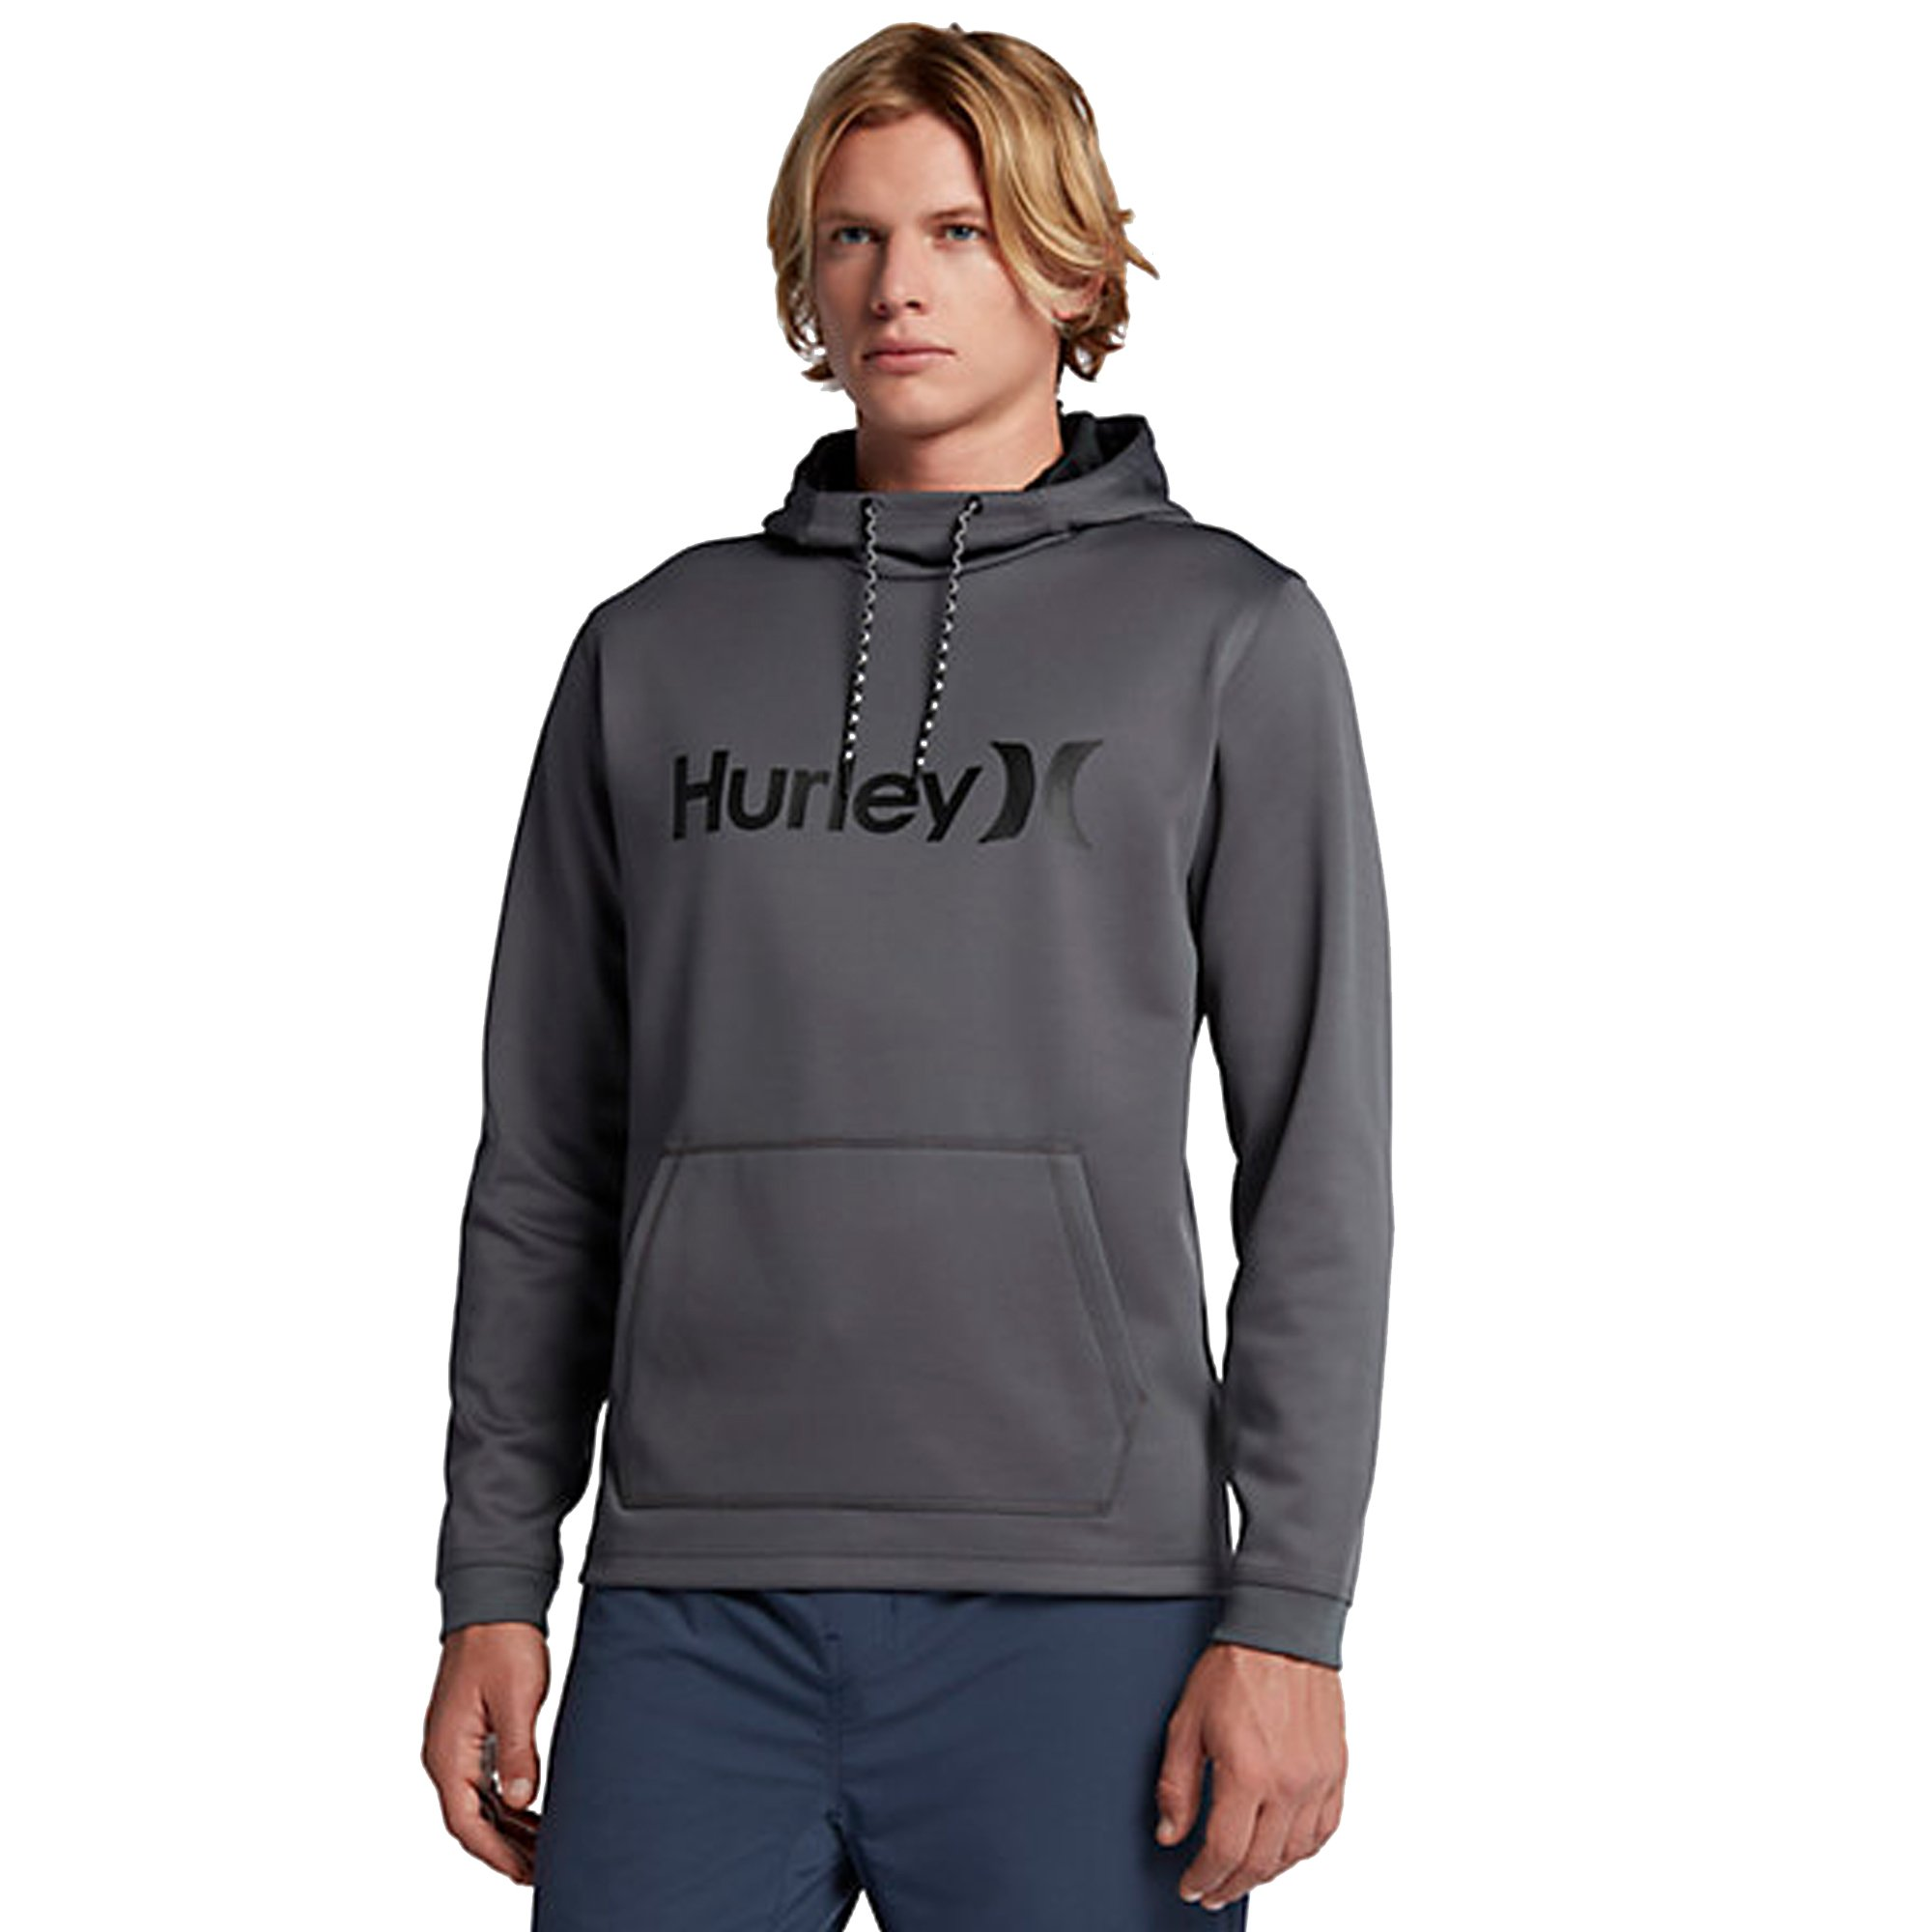 Hurley Men's Therma Protect Pullover Fleece, Dark Grey, Small